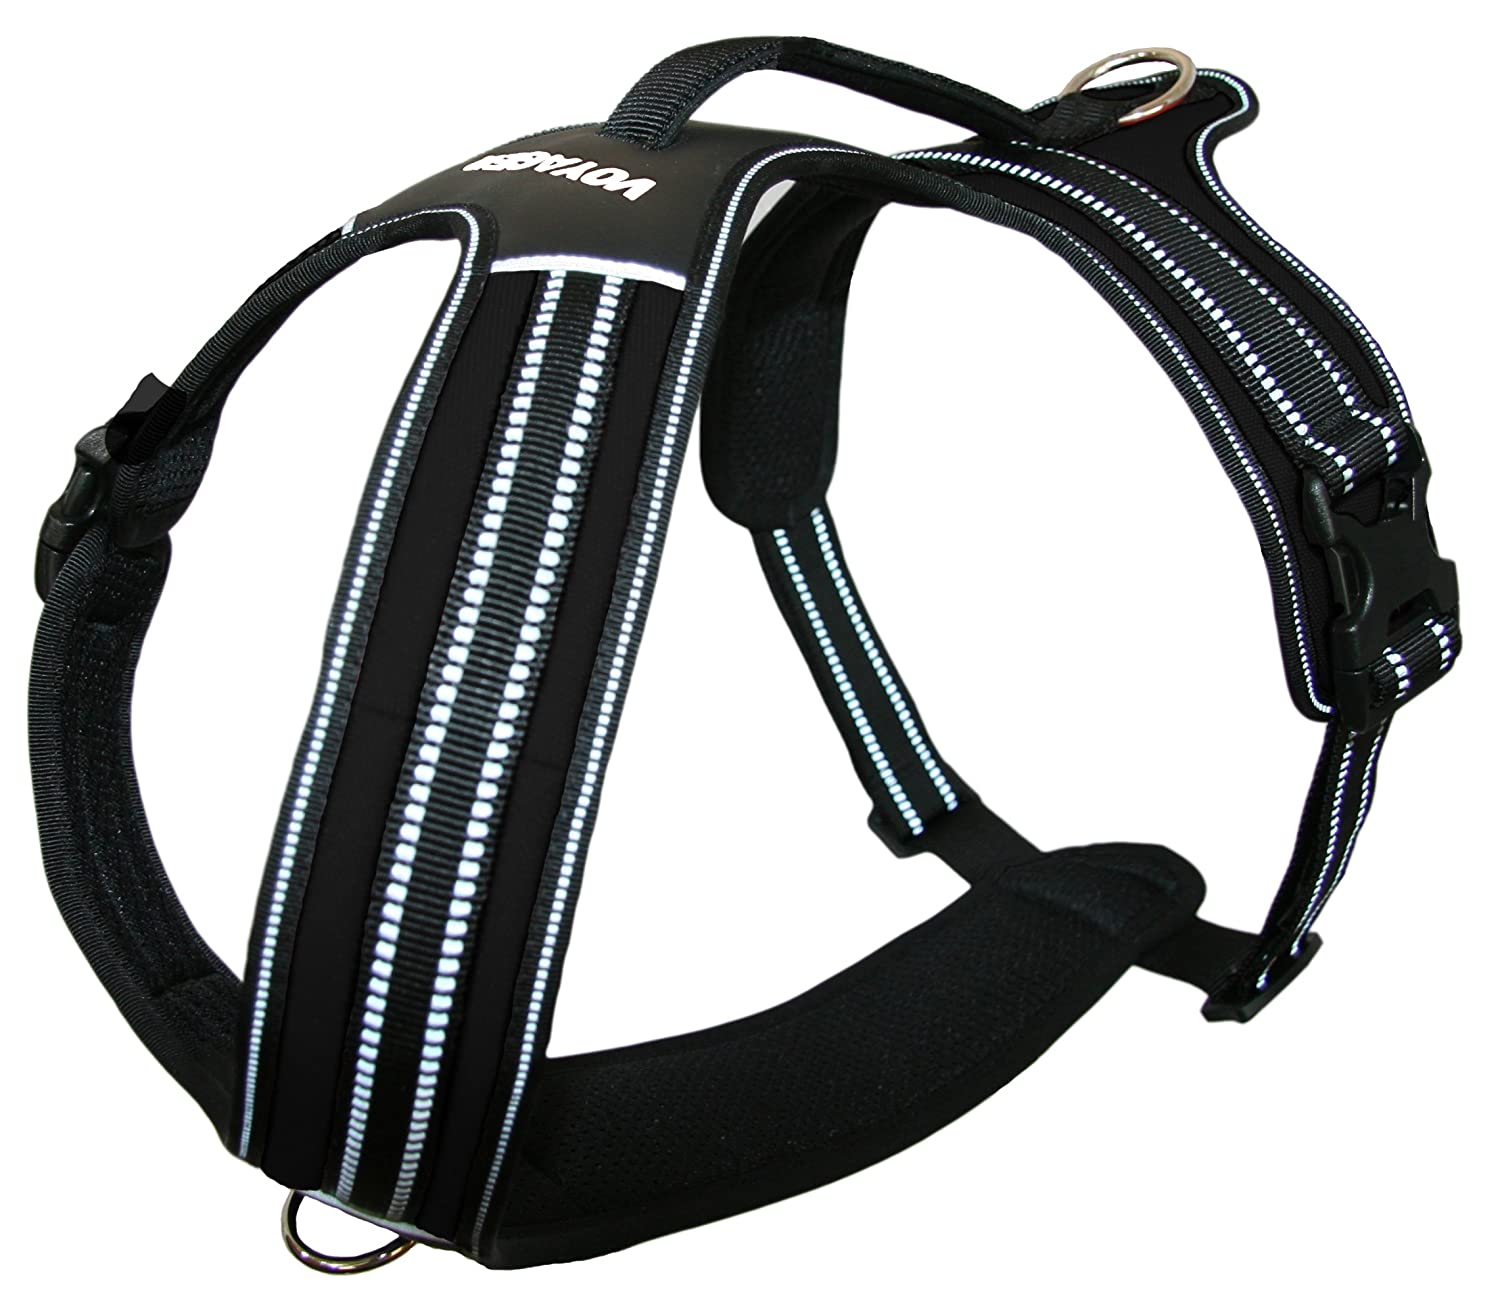 Black Small Black Small Voyager No Pull Harness Dogs w Two Leash Attachment Rings Heavy Duty Design- Reflective Walking Harnesses (Black Small)